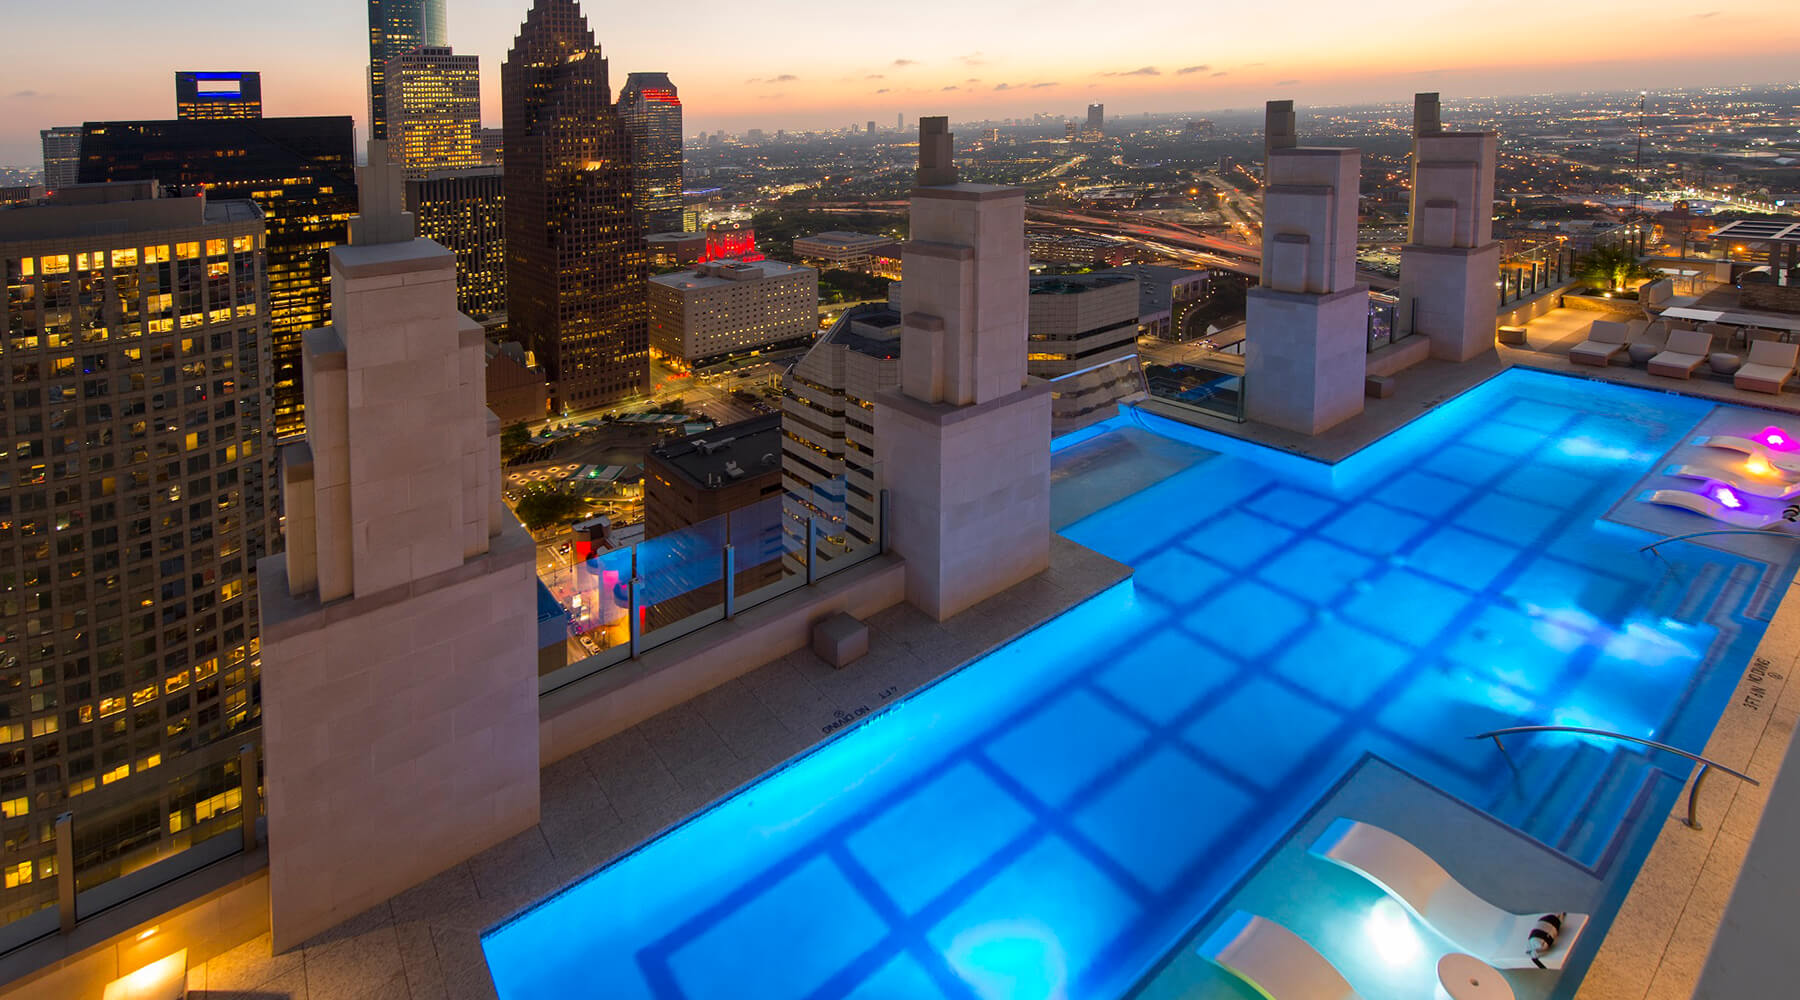 Market Square Tower Sky Pool At Dusk